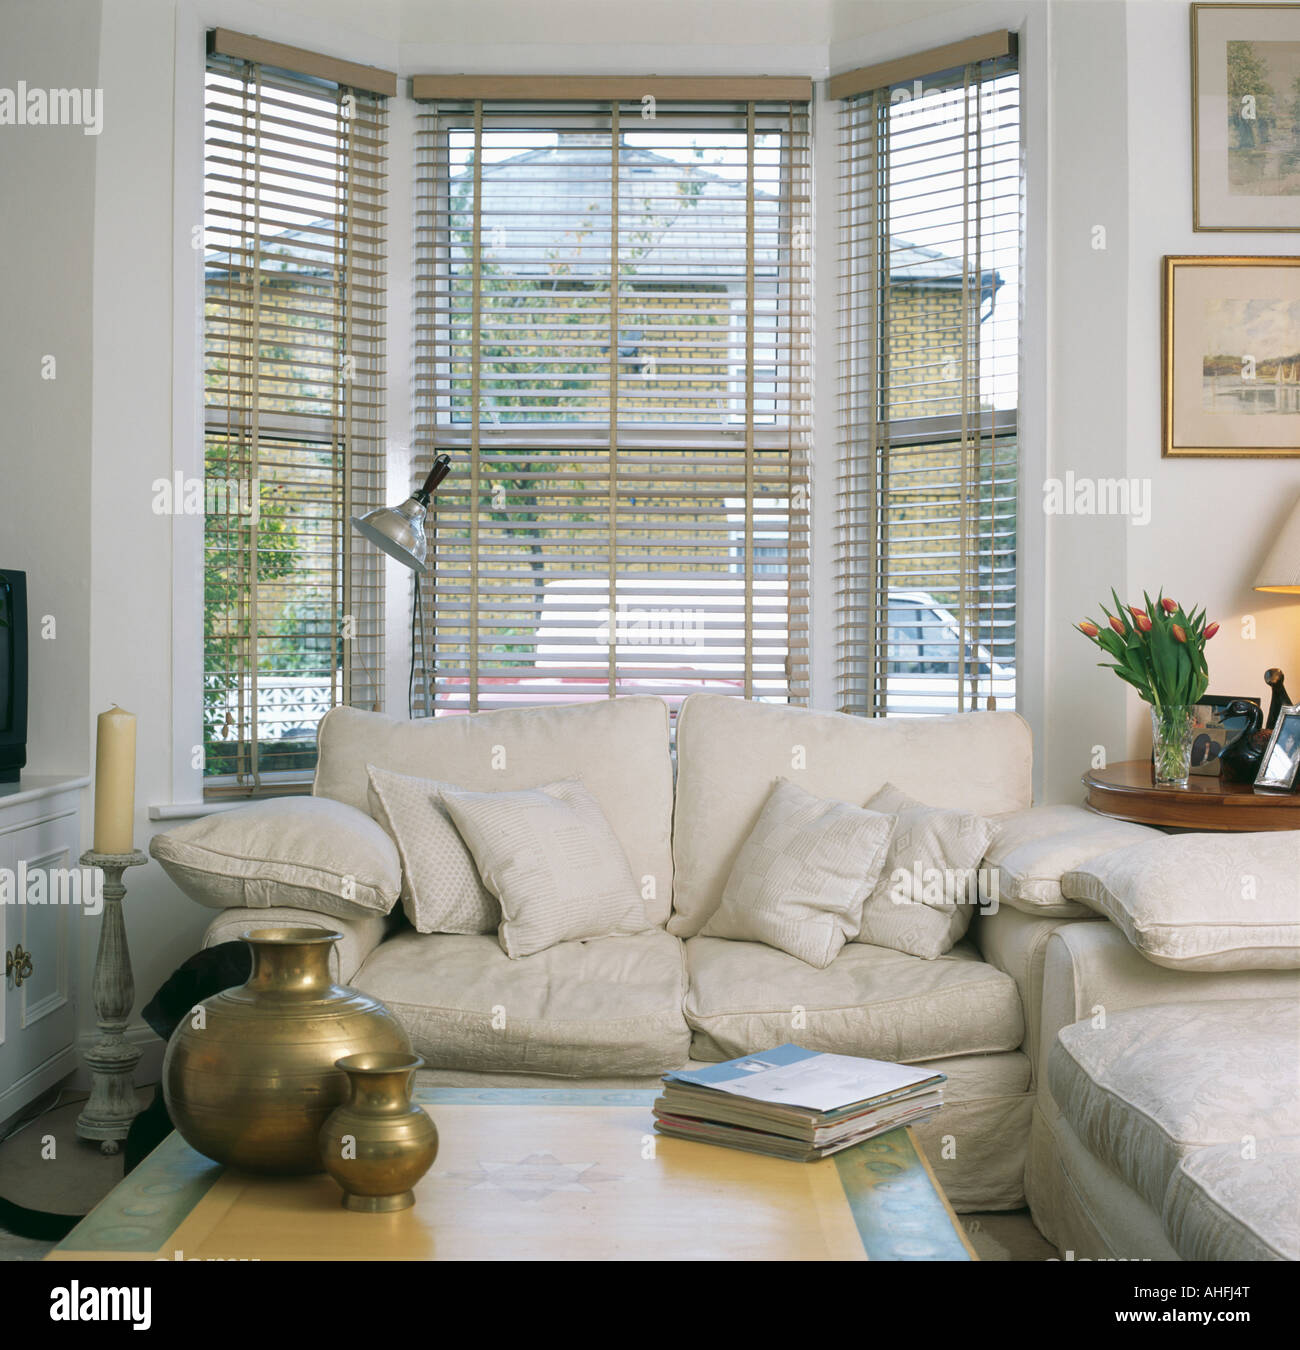 Cream Sofa In Front Of Bay Window With Slatted Blind